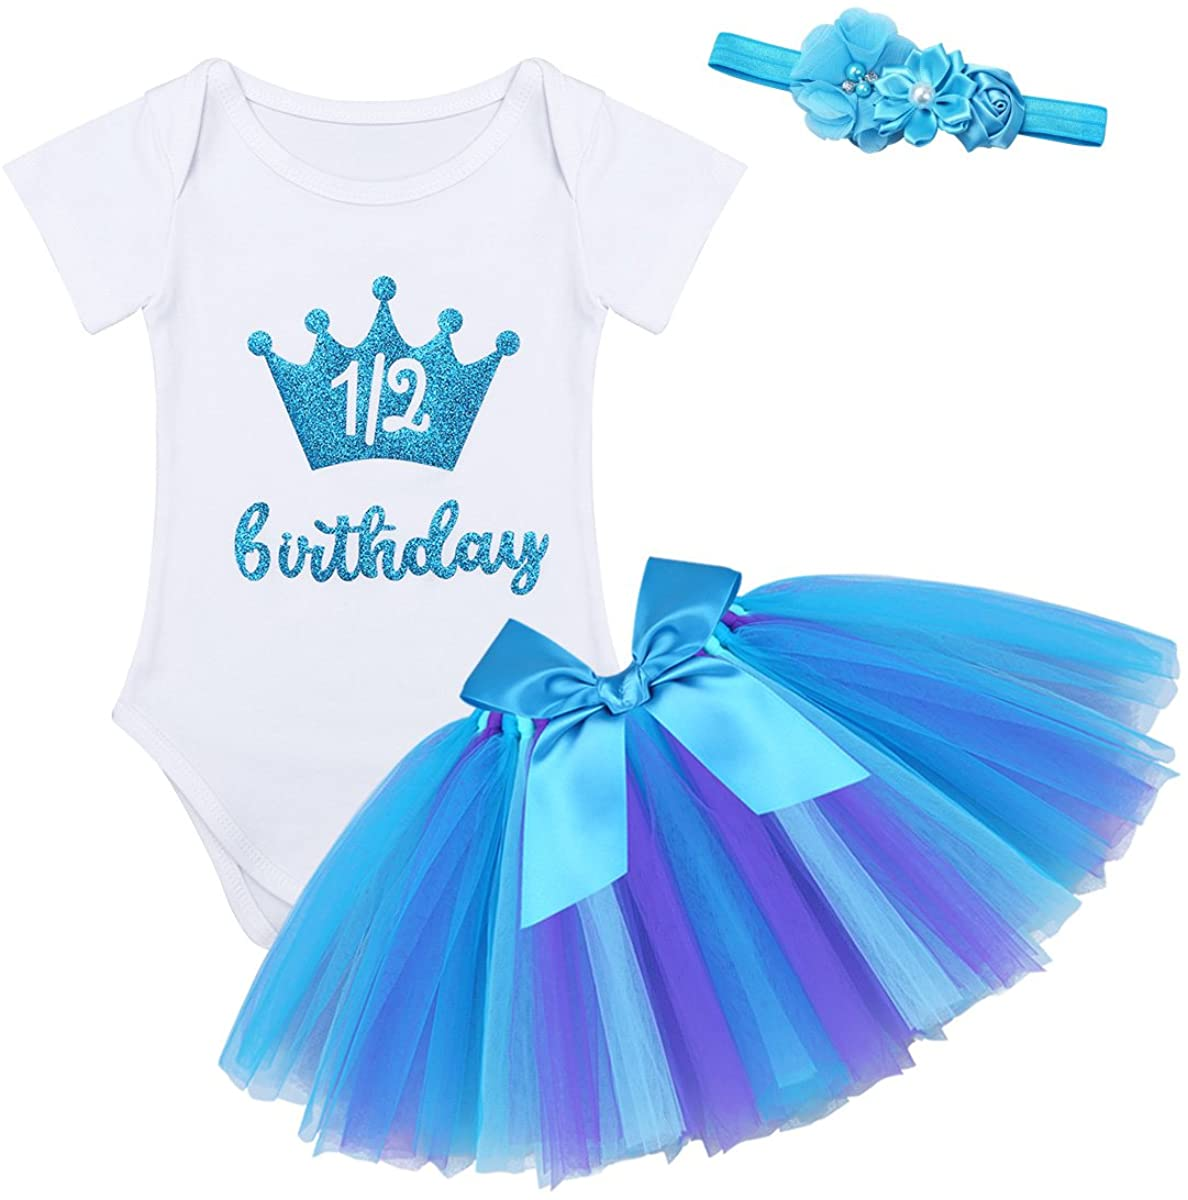 FEESHOW Newborn Baby Girls 1/2 Half / 1st Birthday Oufit Romper Bodysuit Top with Headband Tutu Skirt Set